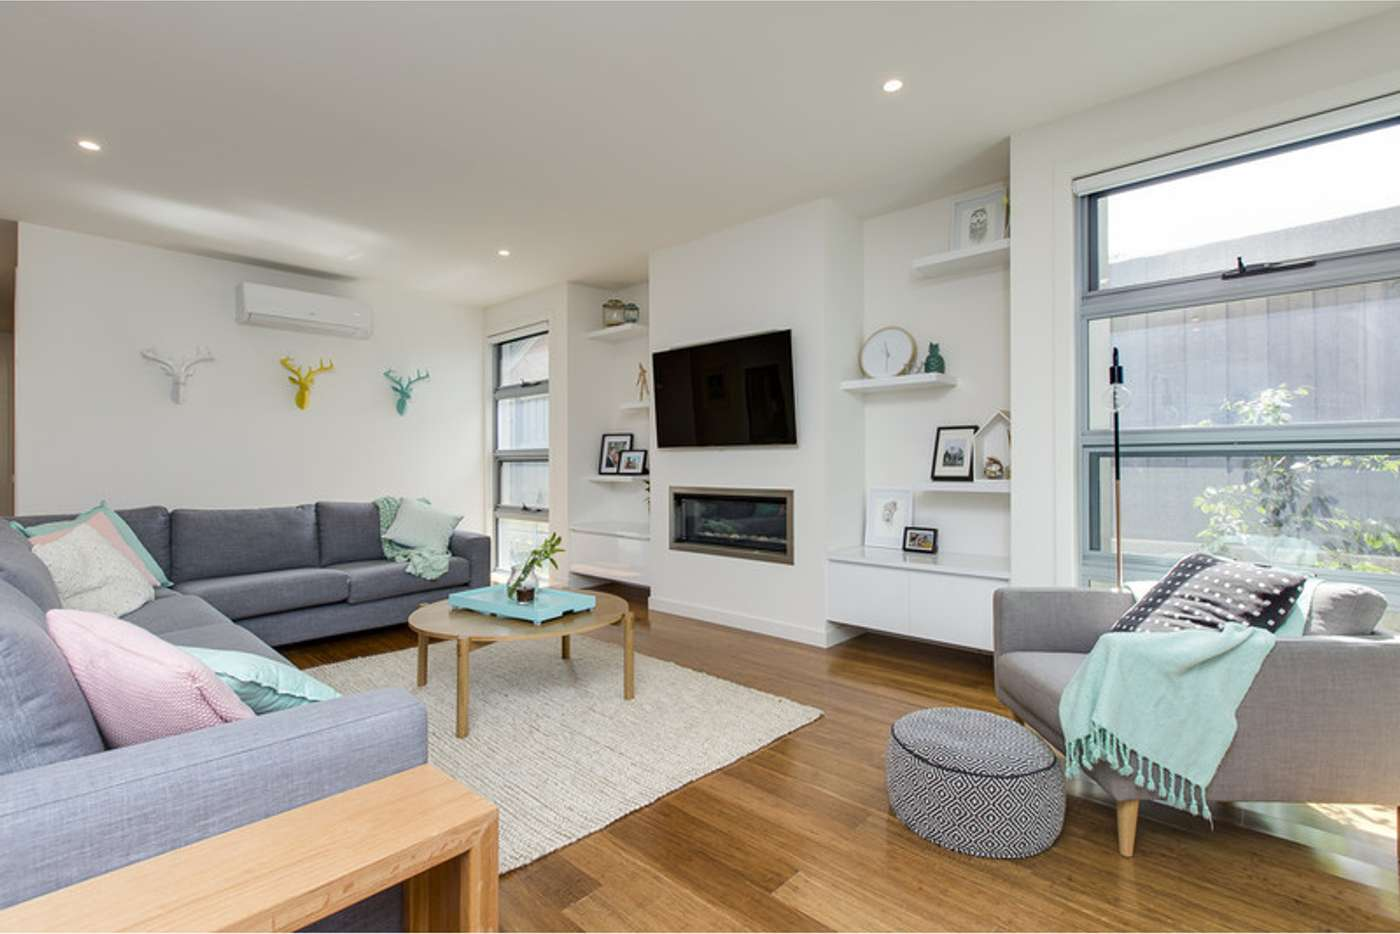 Fifth view of Homely townhouse listing, 11 Karella Crescent, Mornington VIC 3931